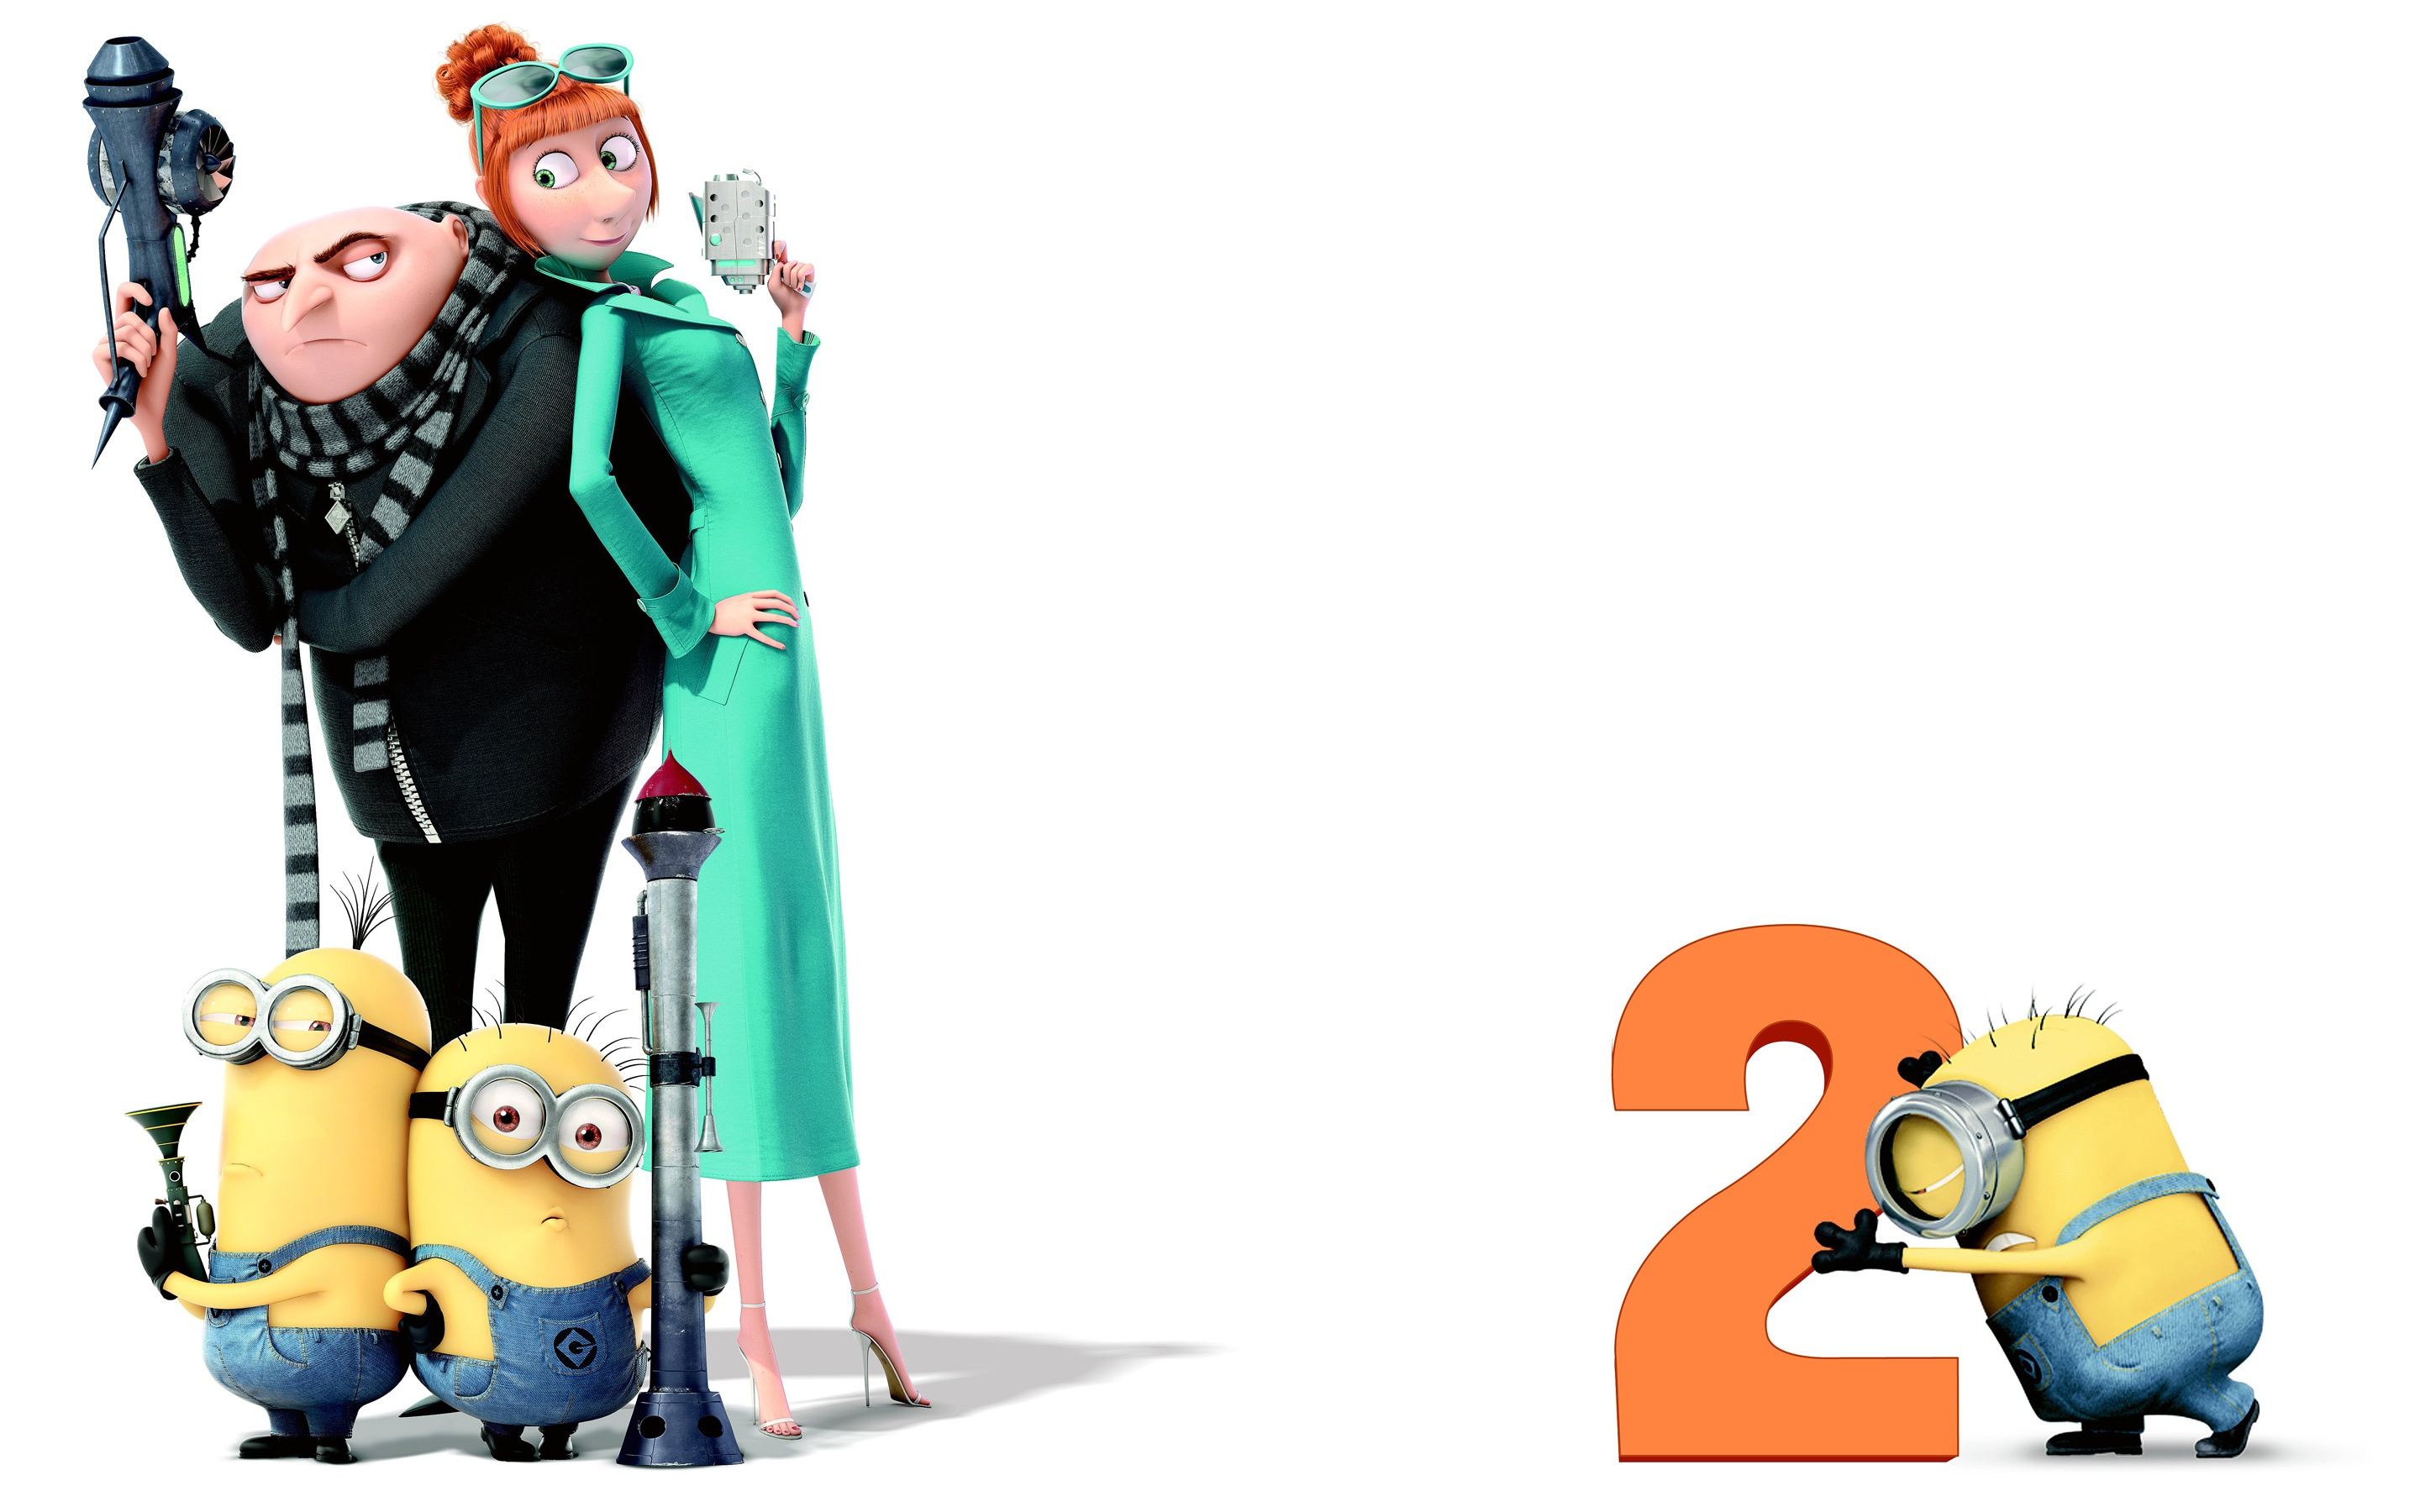 despicable me 2 online dating Meet kristen wiig's character lucy wilde as she gives steve carell's character gru a run for his money in the new movie despicable me 2 meet kristen wiig's.